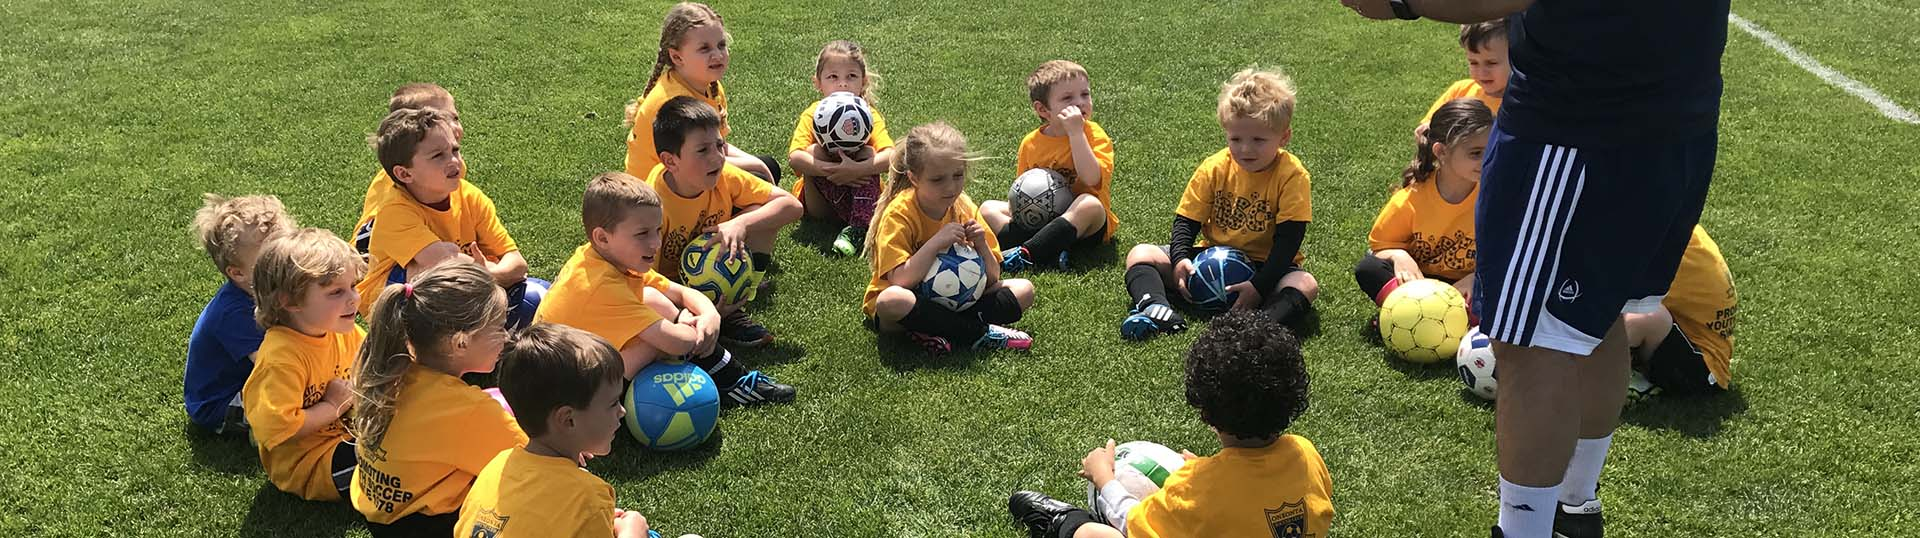 Lil OSC'ers sit in a huddle listening to their coach